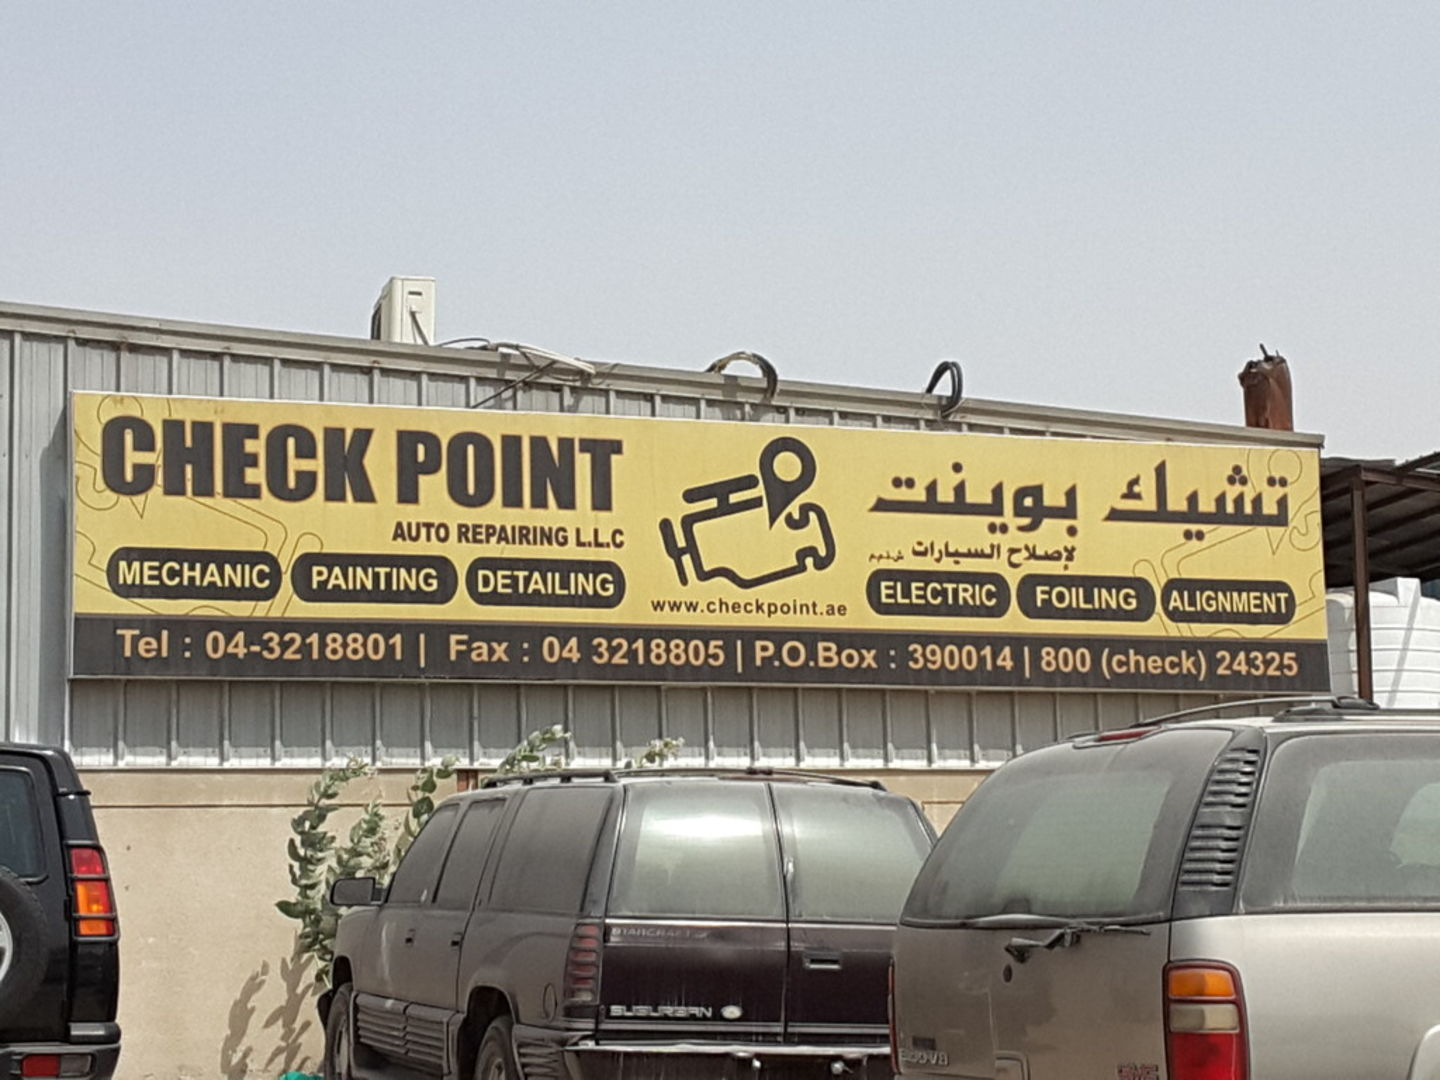 Walif-business-check-point-auto-repairing